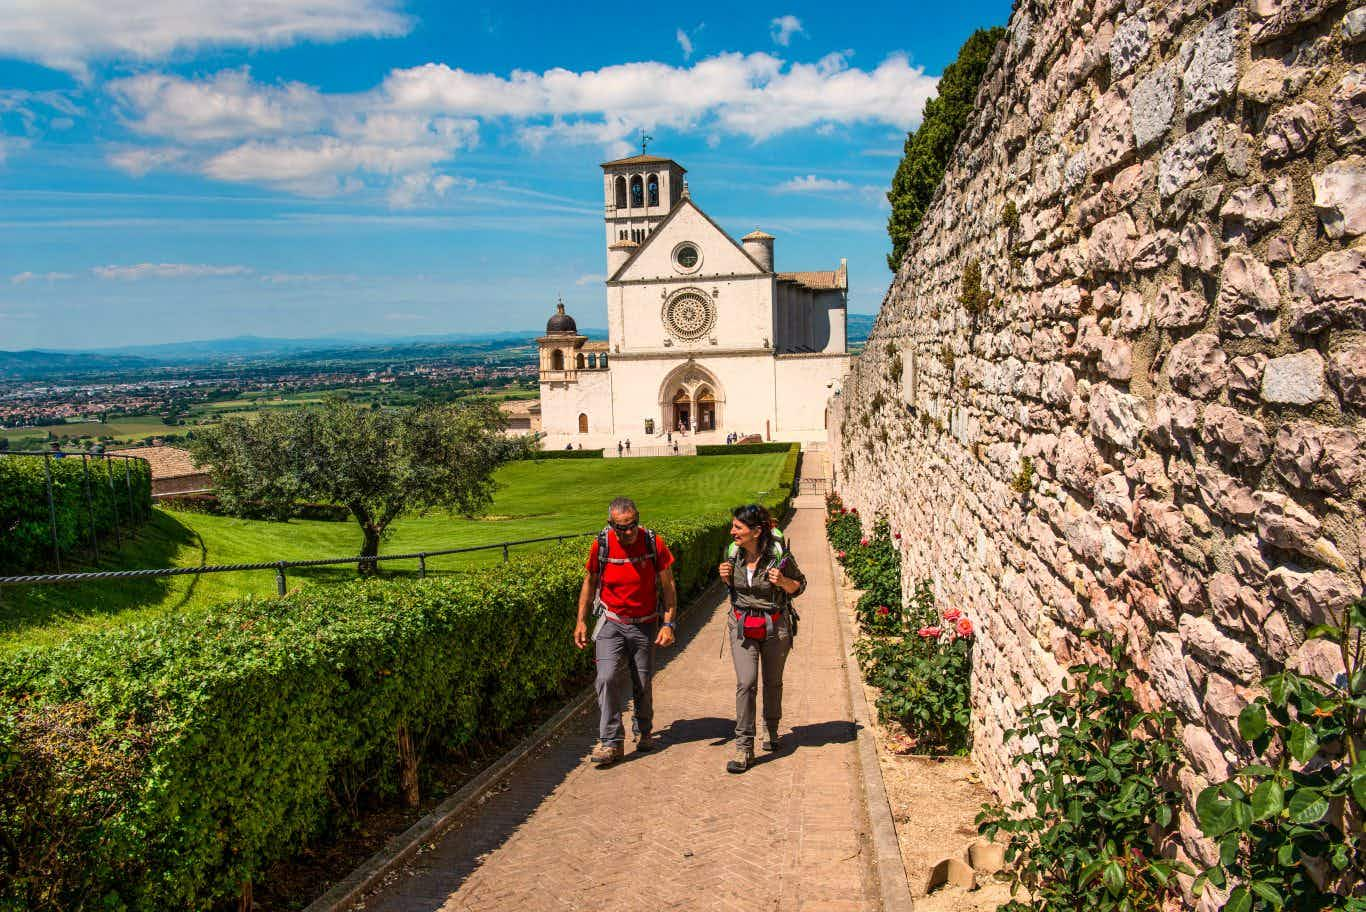 Italy wants tourists to venture further and explore hidden picturesque towns